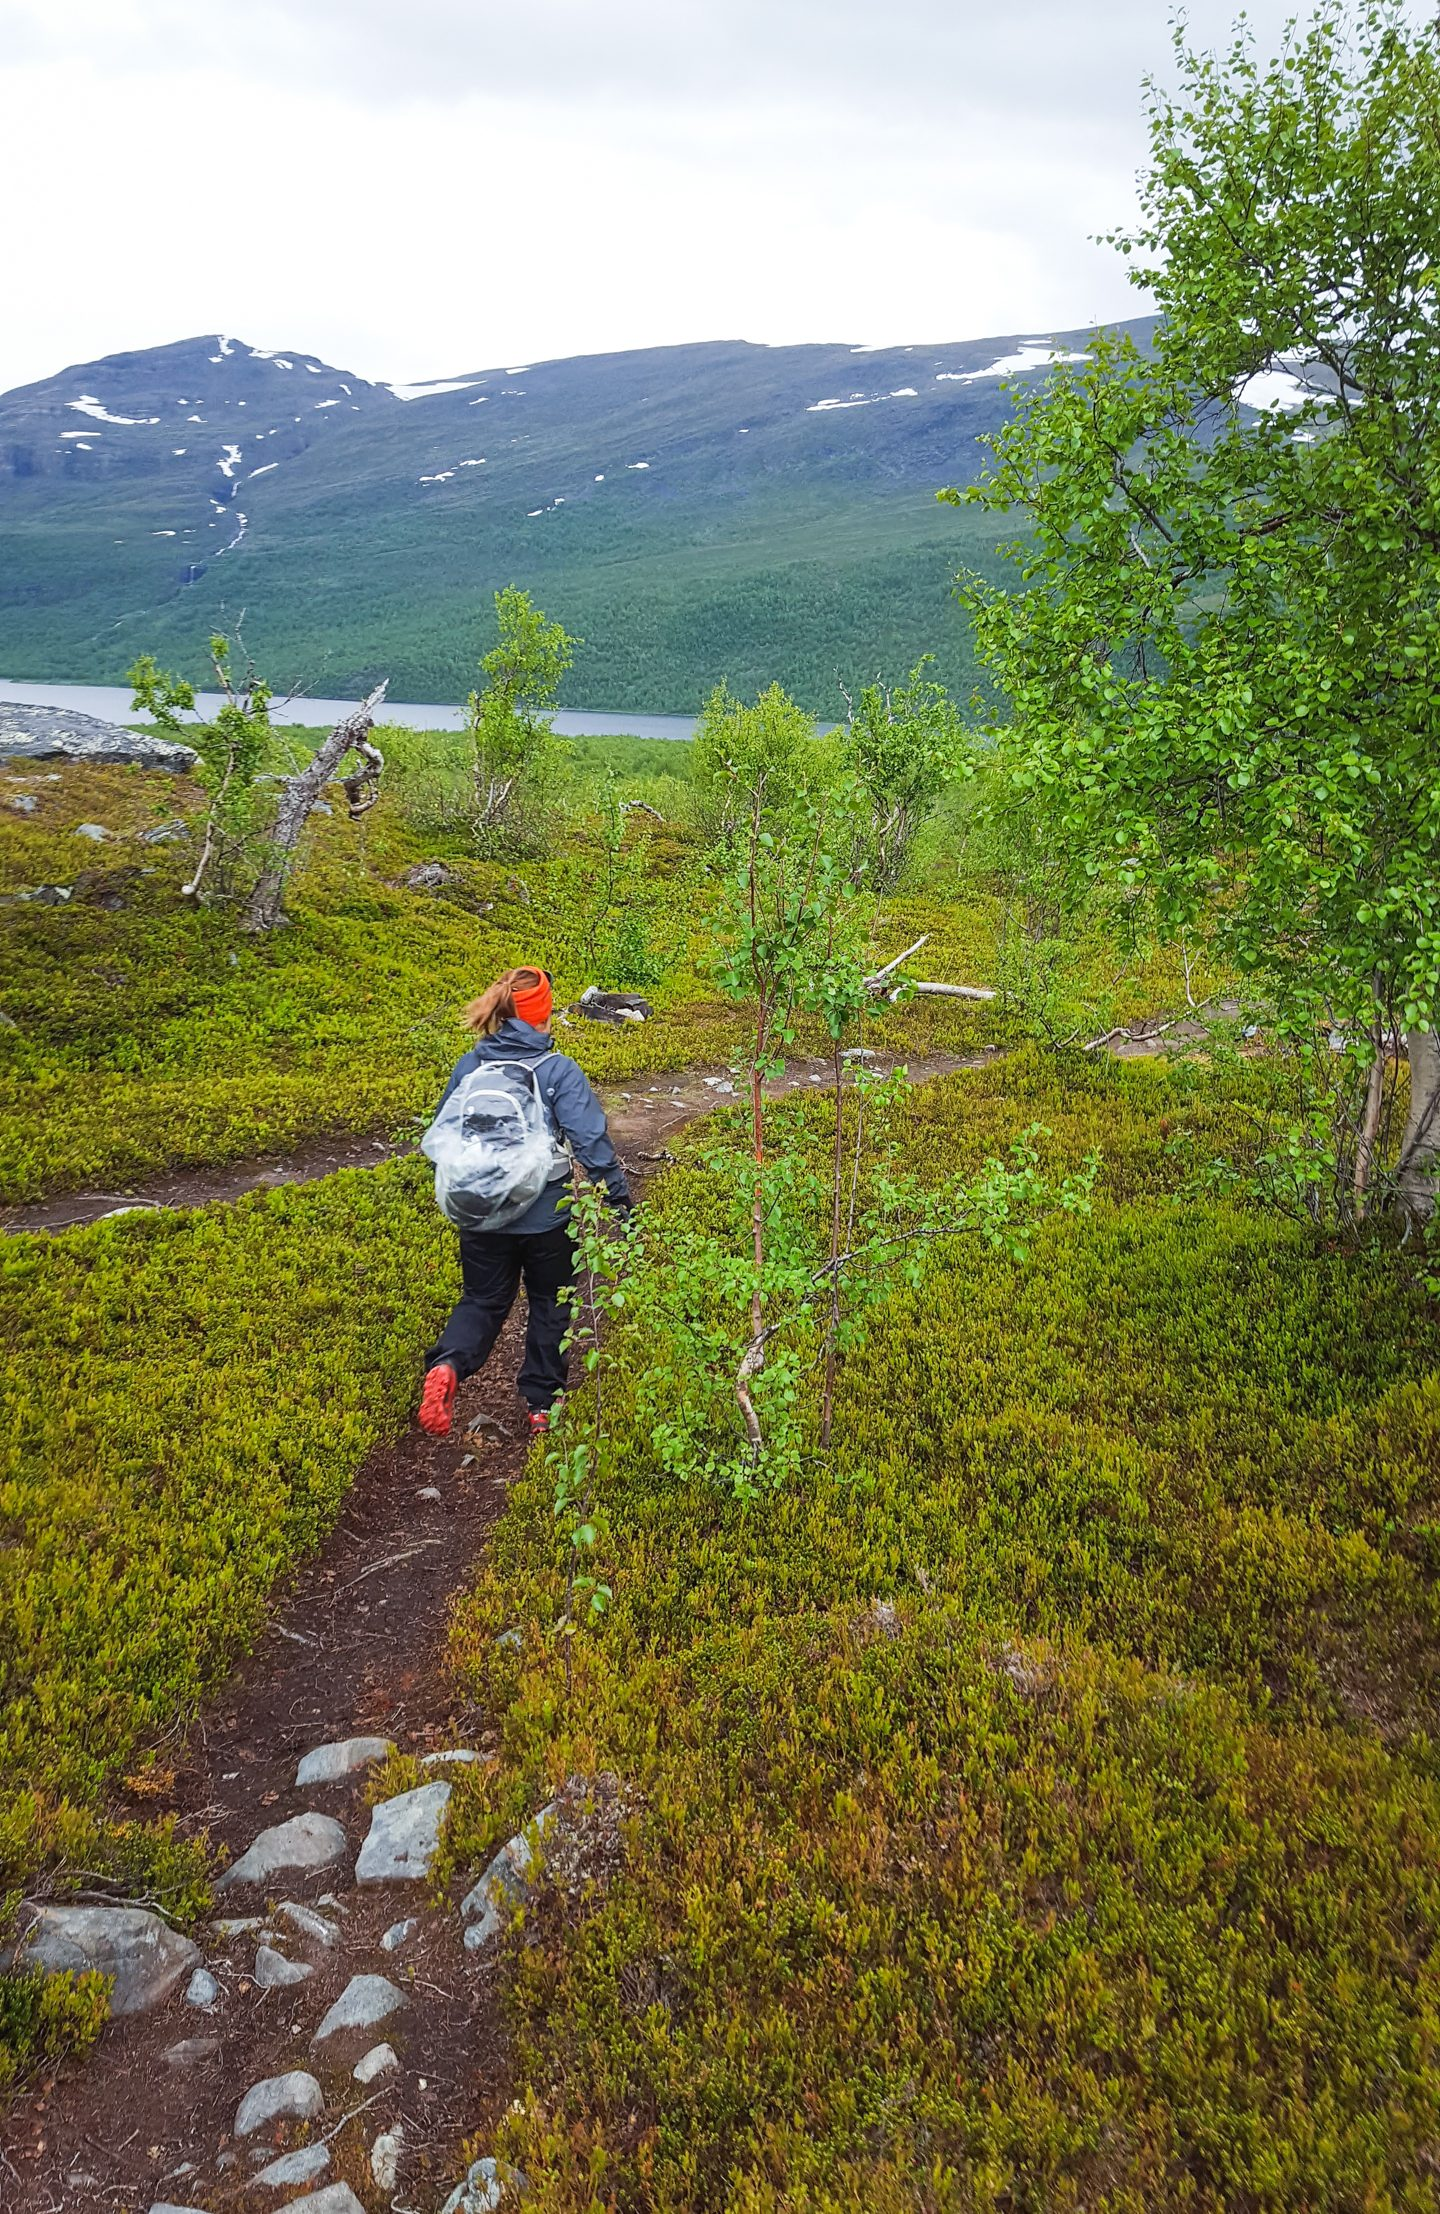 trail running kungsleden - downhill teusajaure - Photo © Amanda Matti